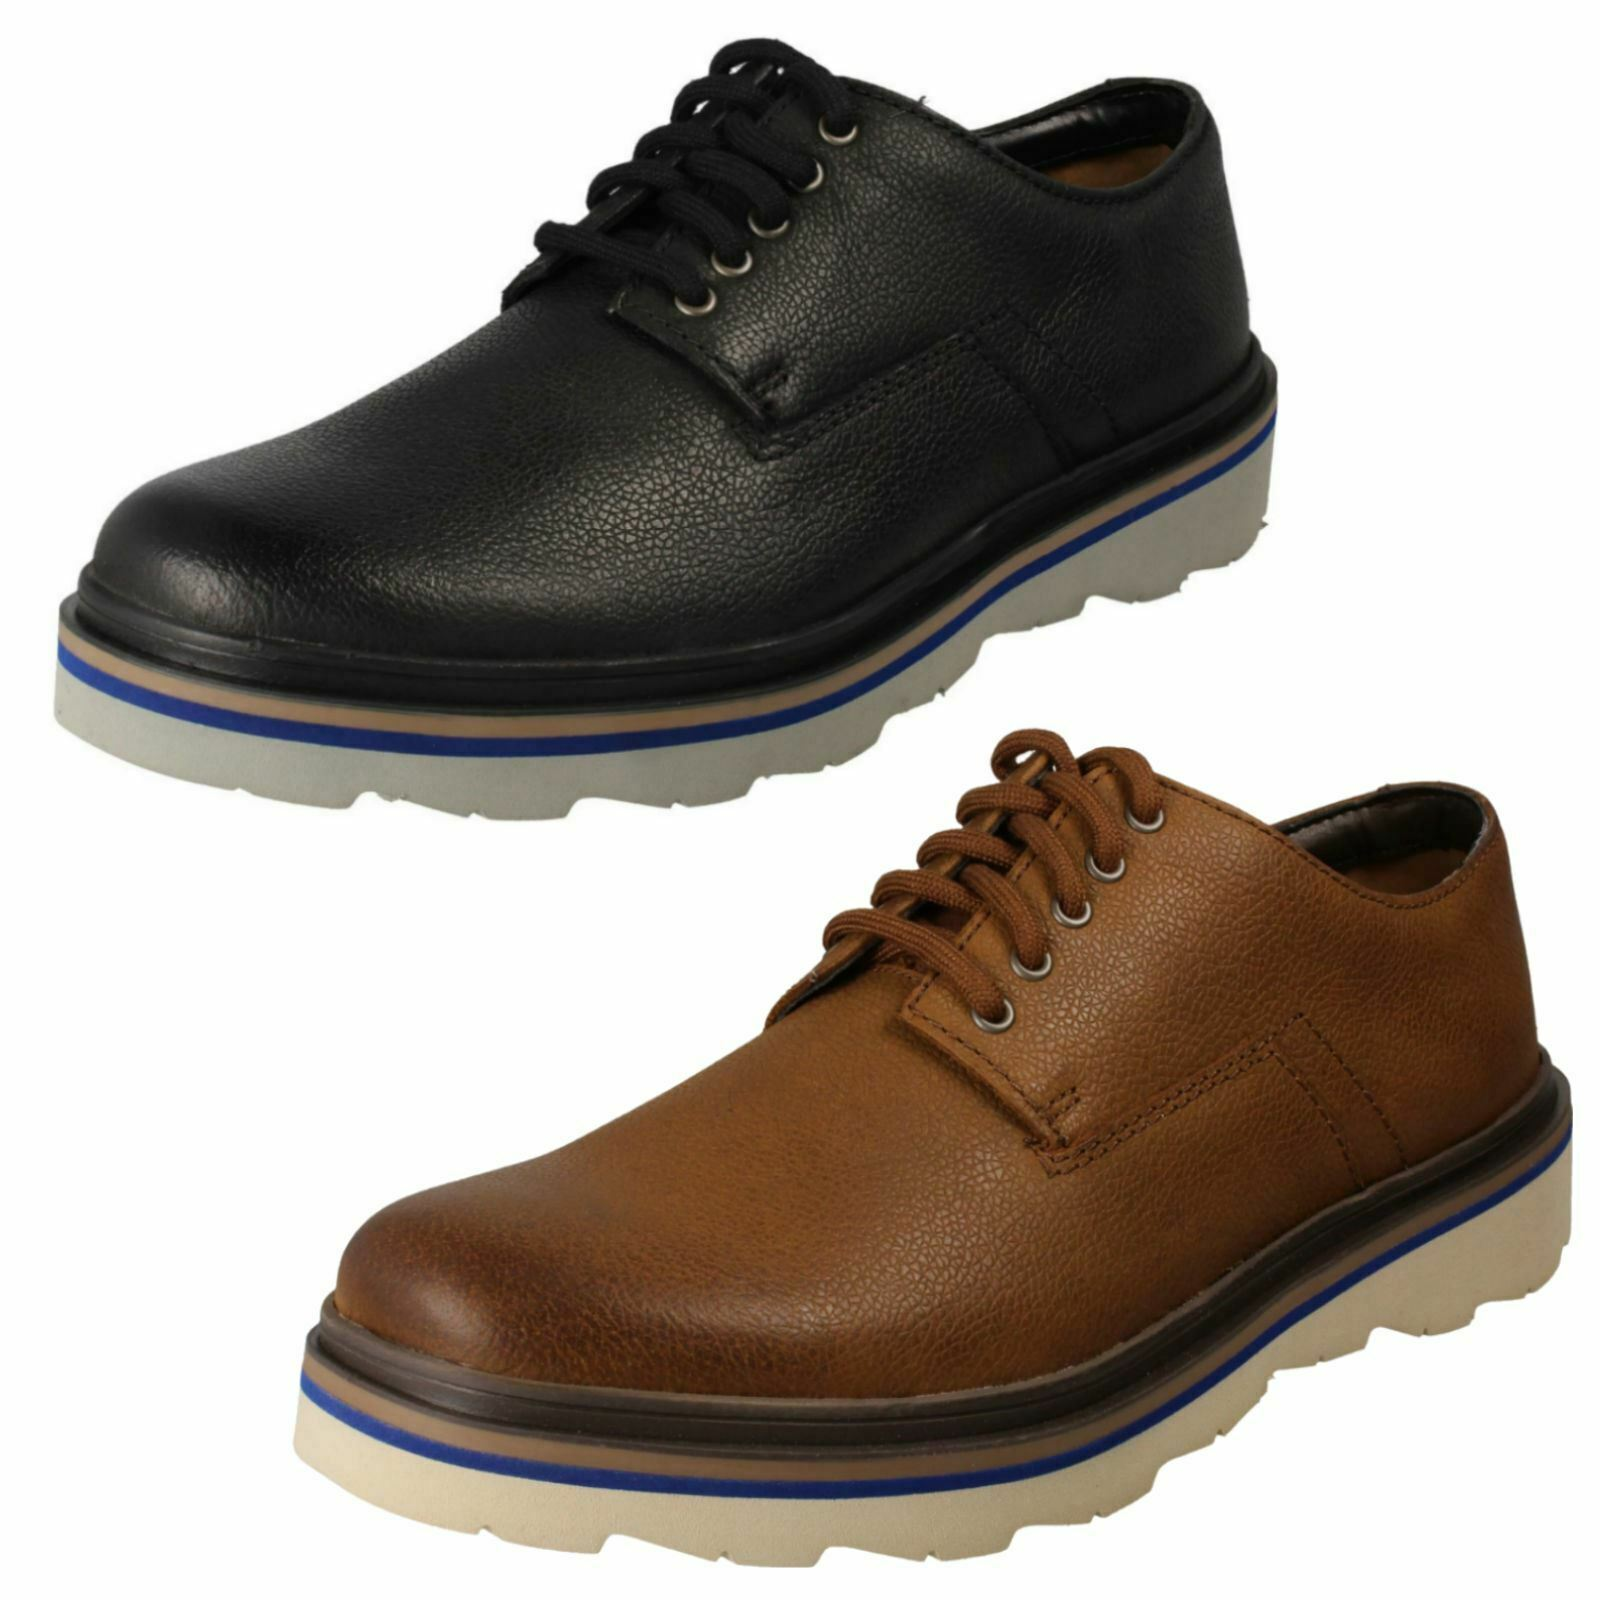 Mens Clarks Smart Casual Lace-Up schuhe 'Frelan Edge'